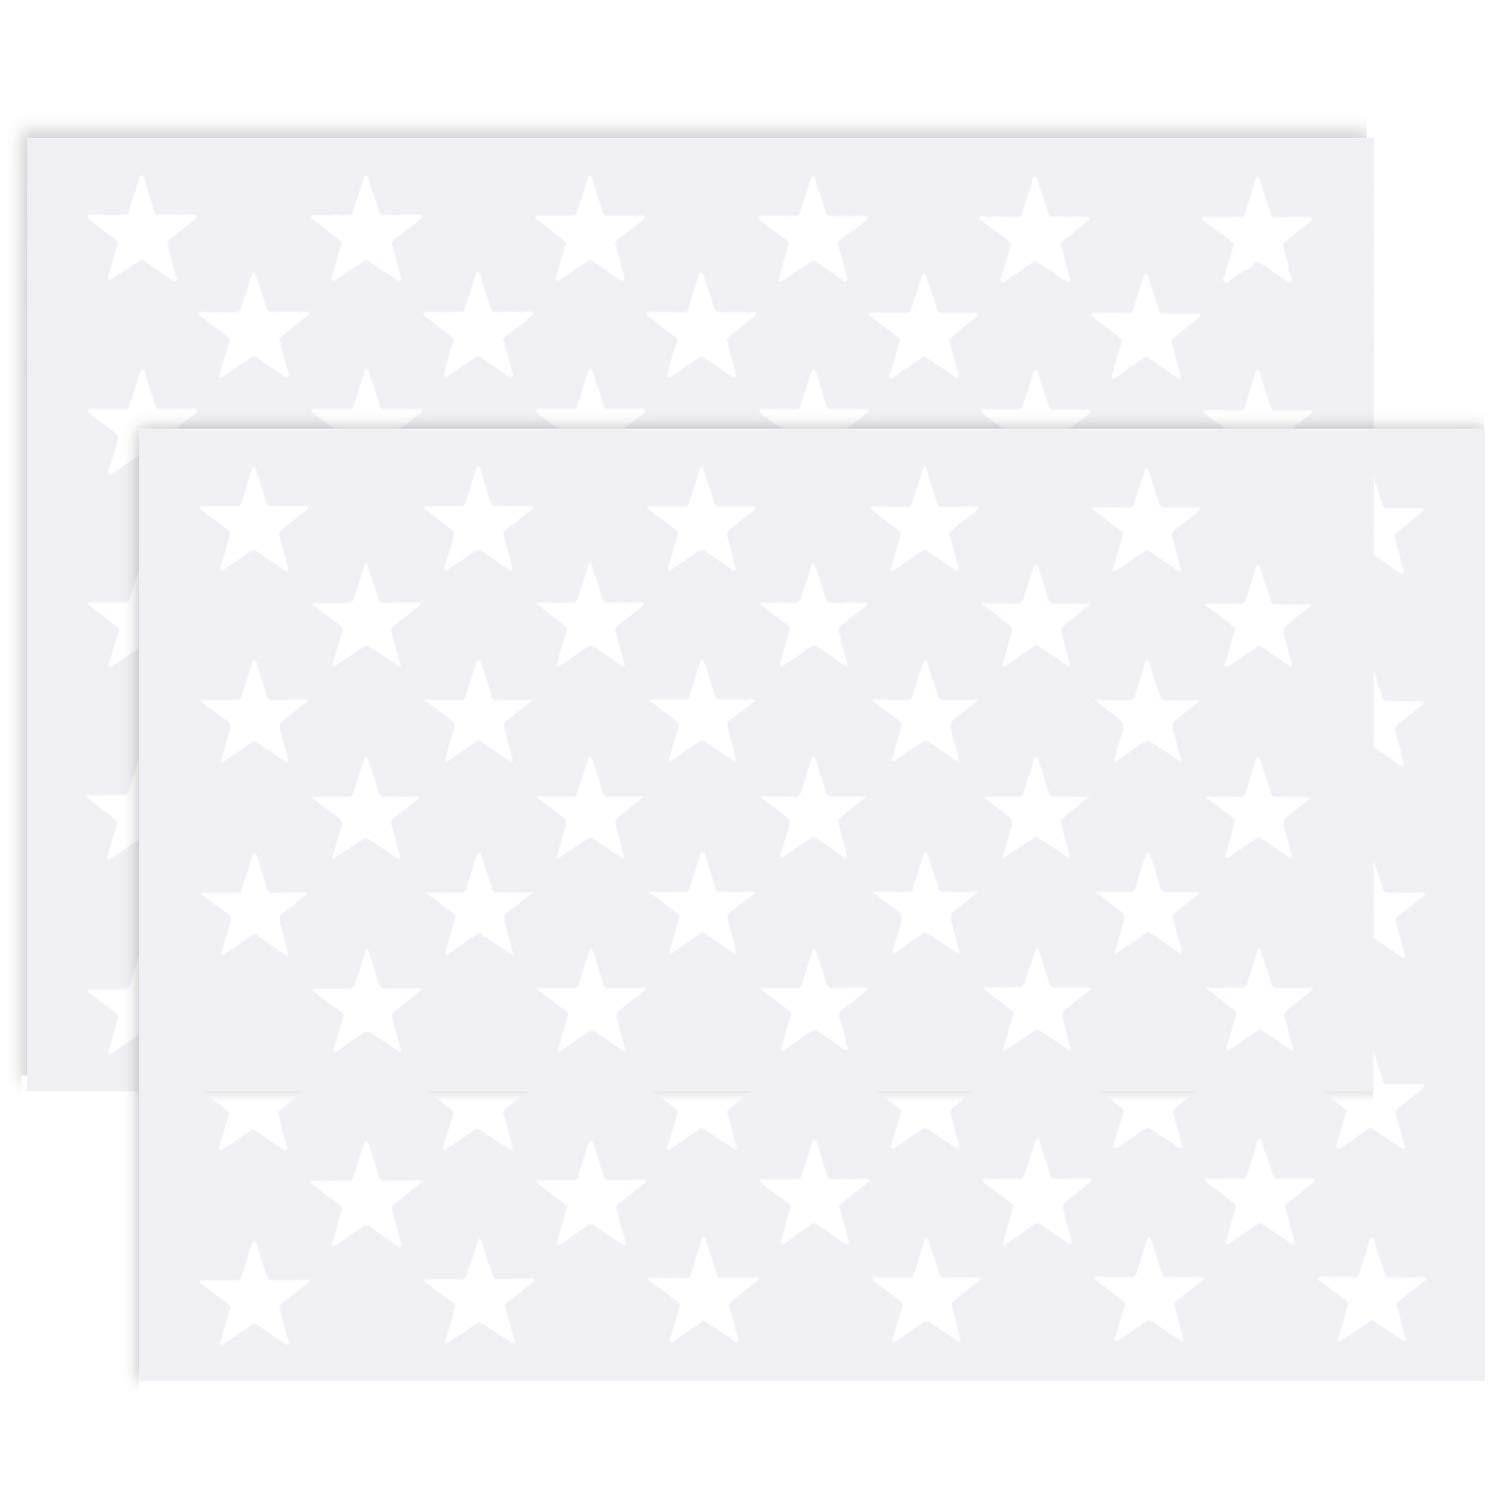 Frienda 2 Pack American Flag 50 Star Field Stencil Template for Painting Crafts Reusable on Wood, Paper, Fabric, Glass, and Wall Art 4336890638